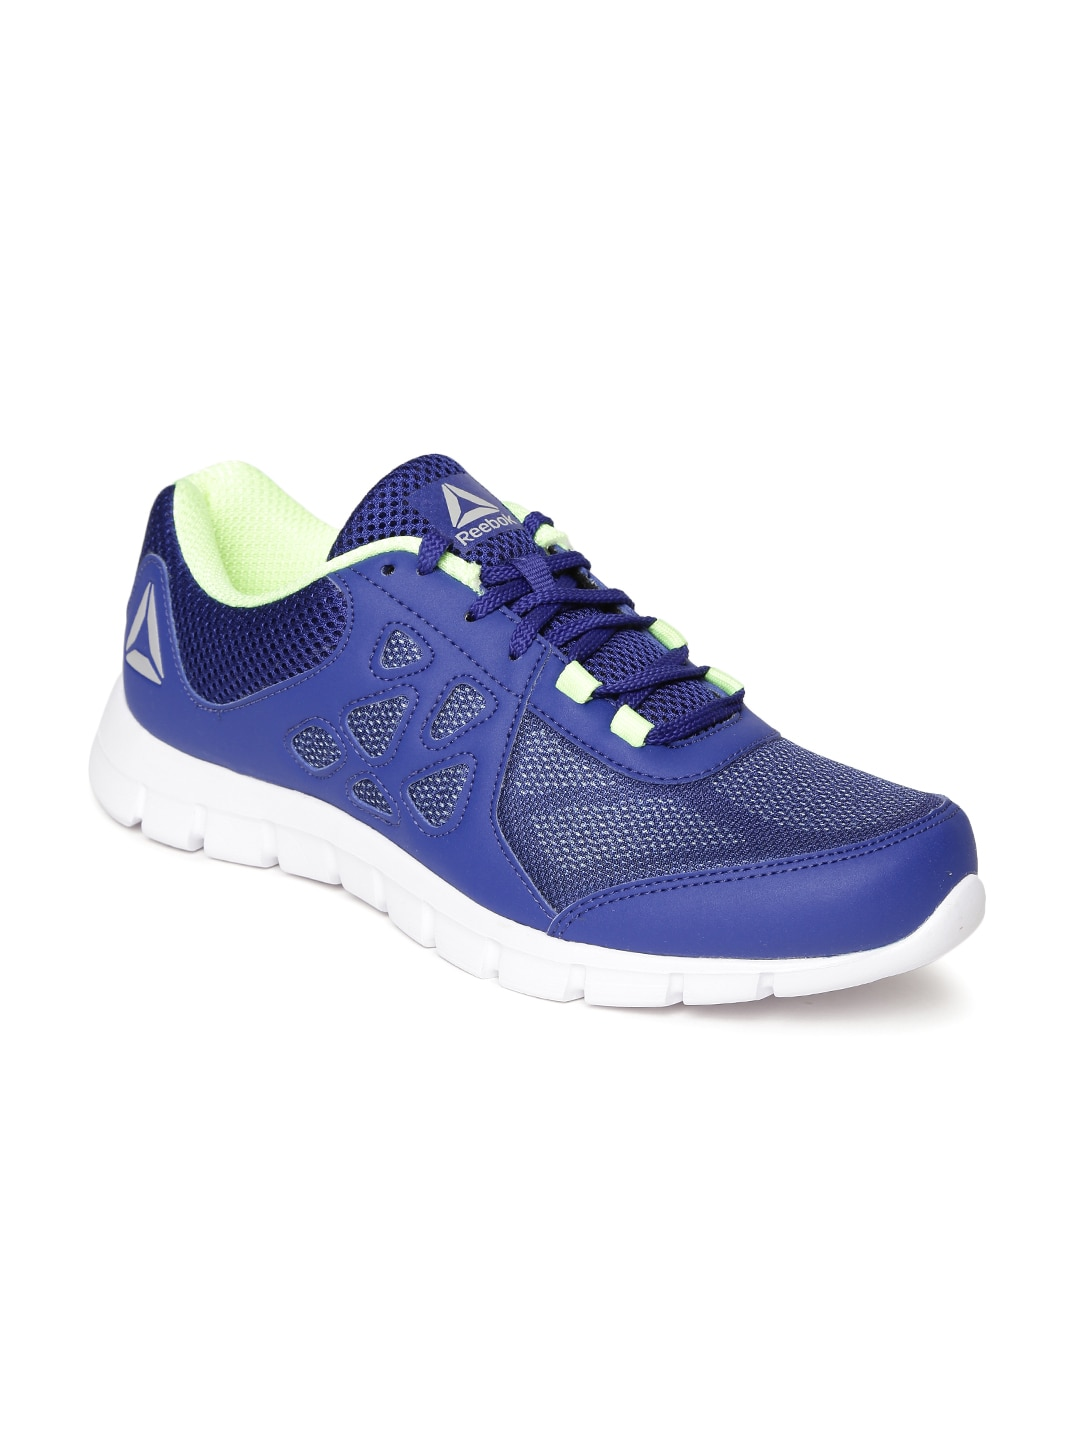 915c2645a1f Reebok Shoes - Buy Reebok Shoes For Men   Women Online